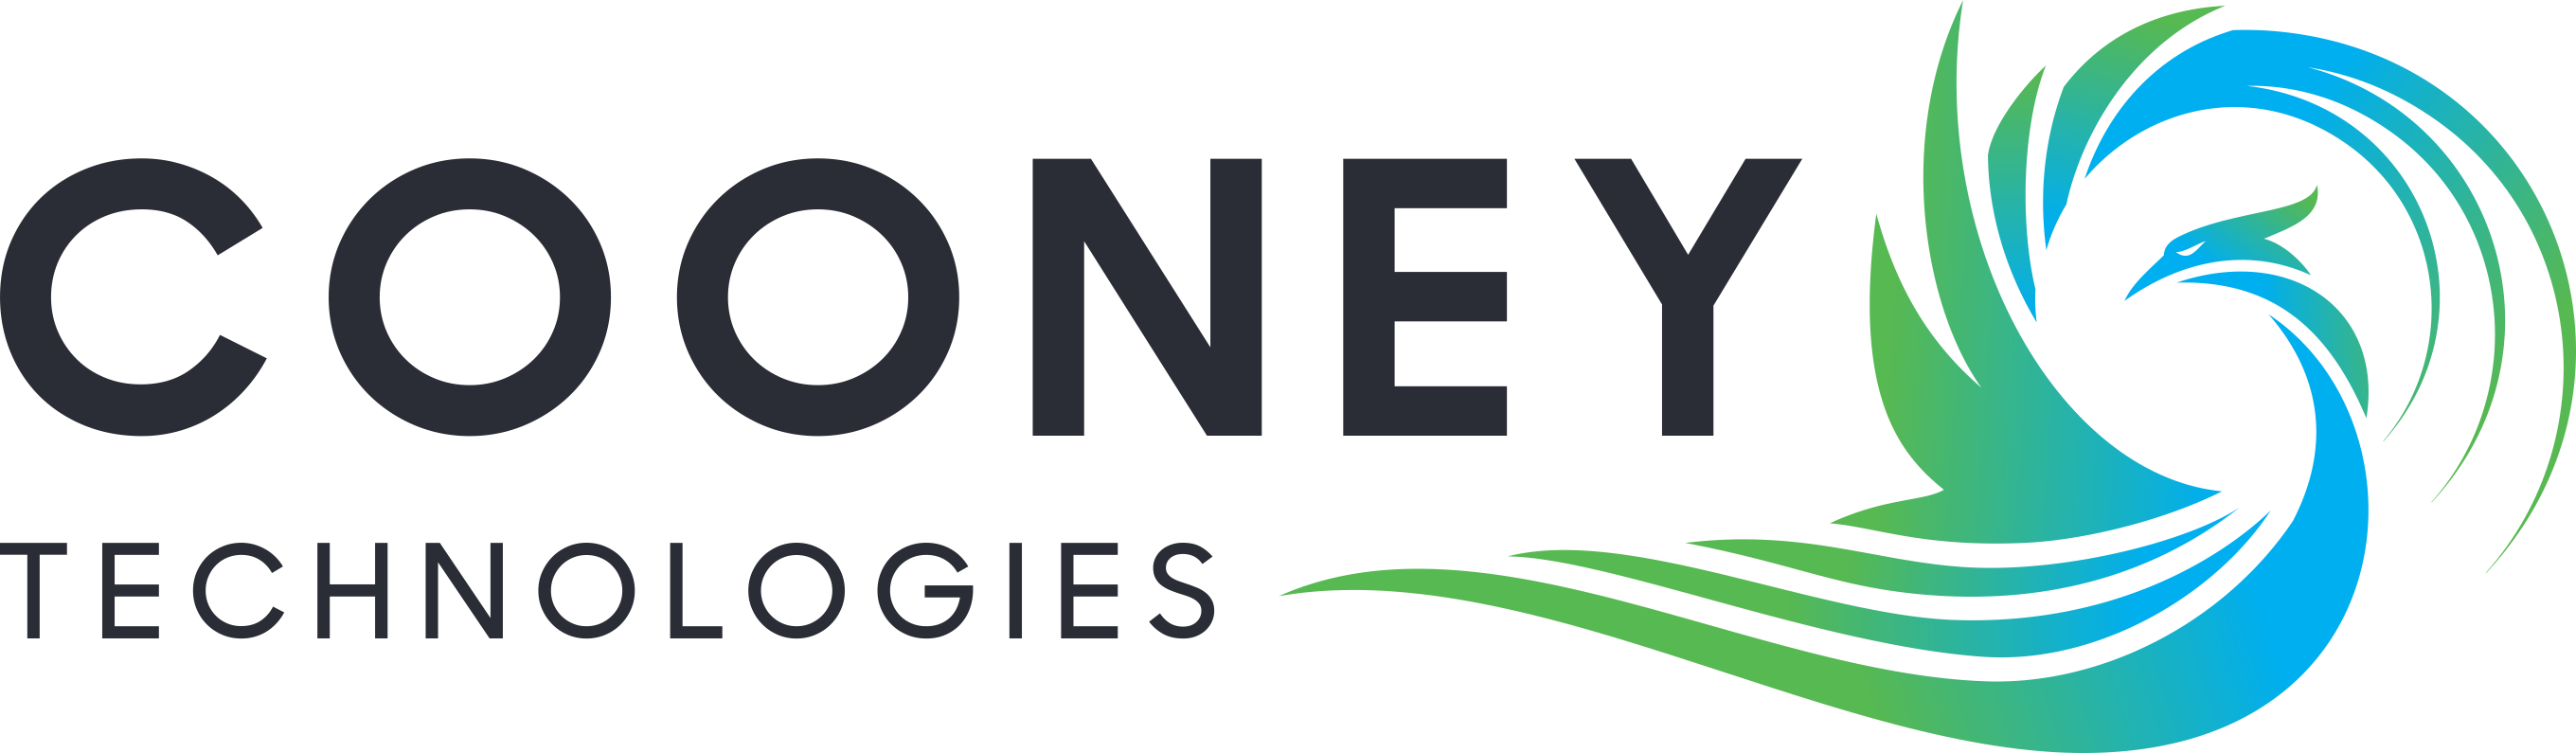 Cooney Technologies with no background